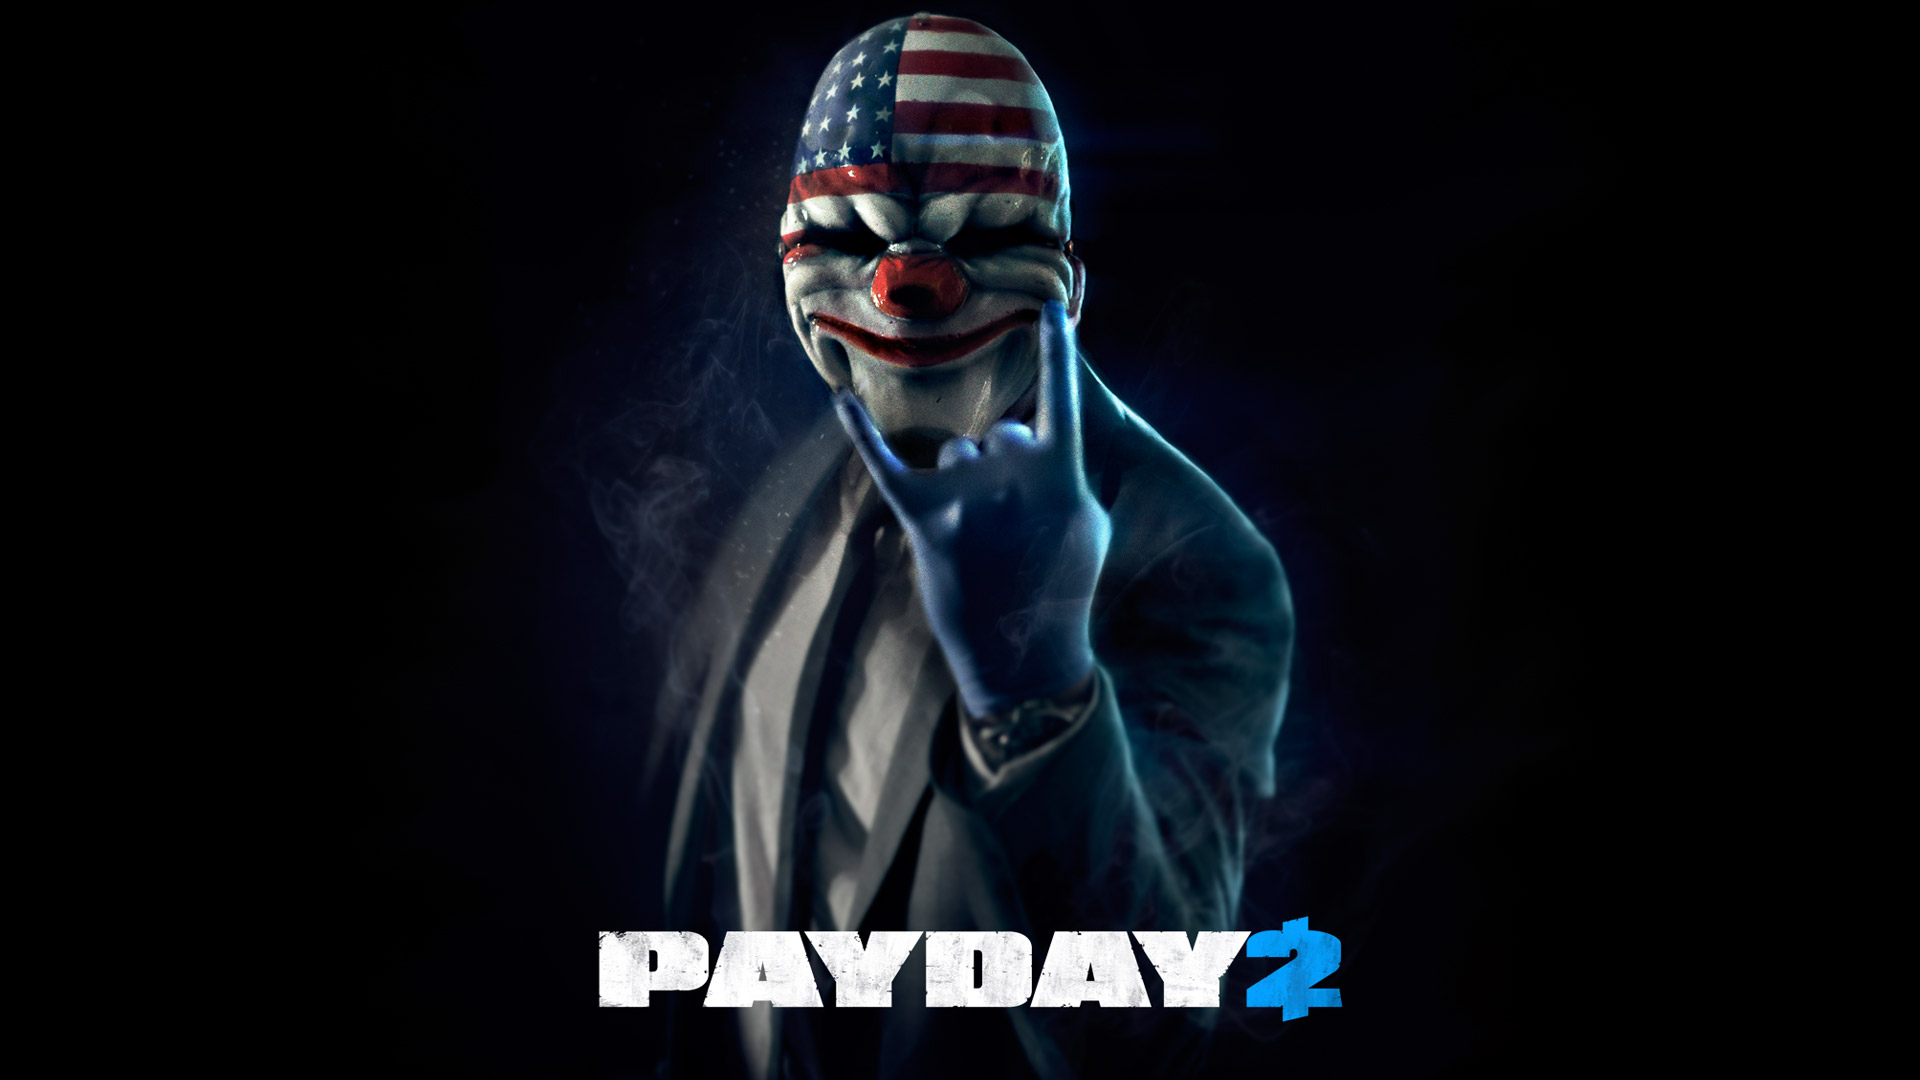 PayDay 2 wallpaper 6